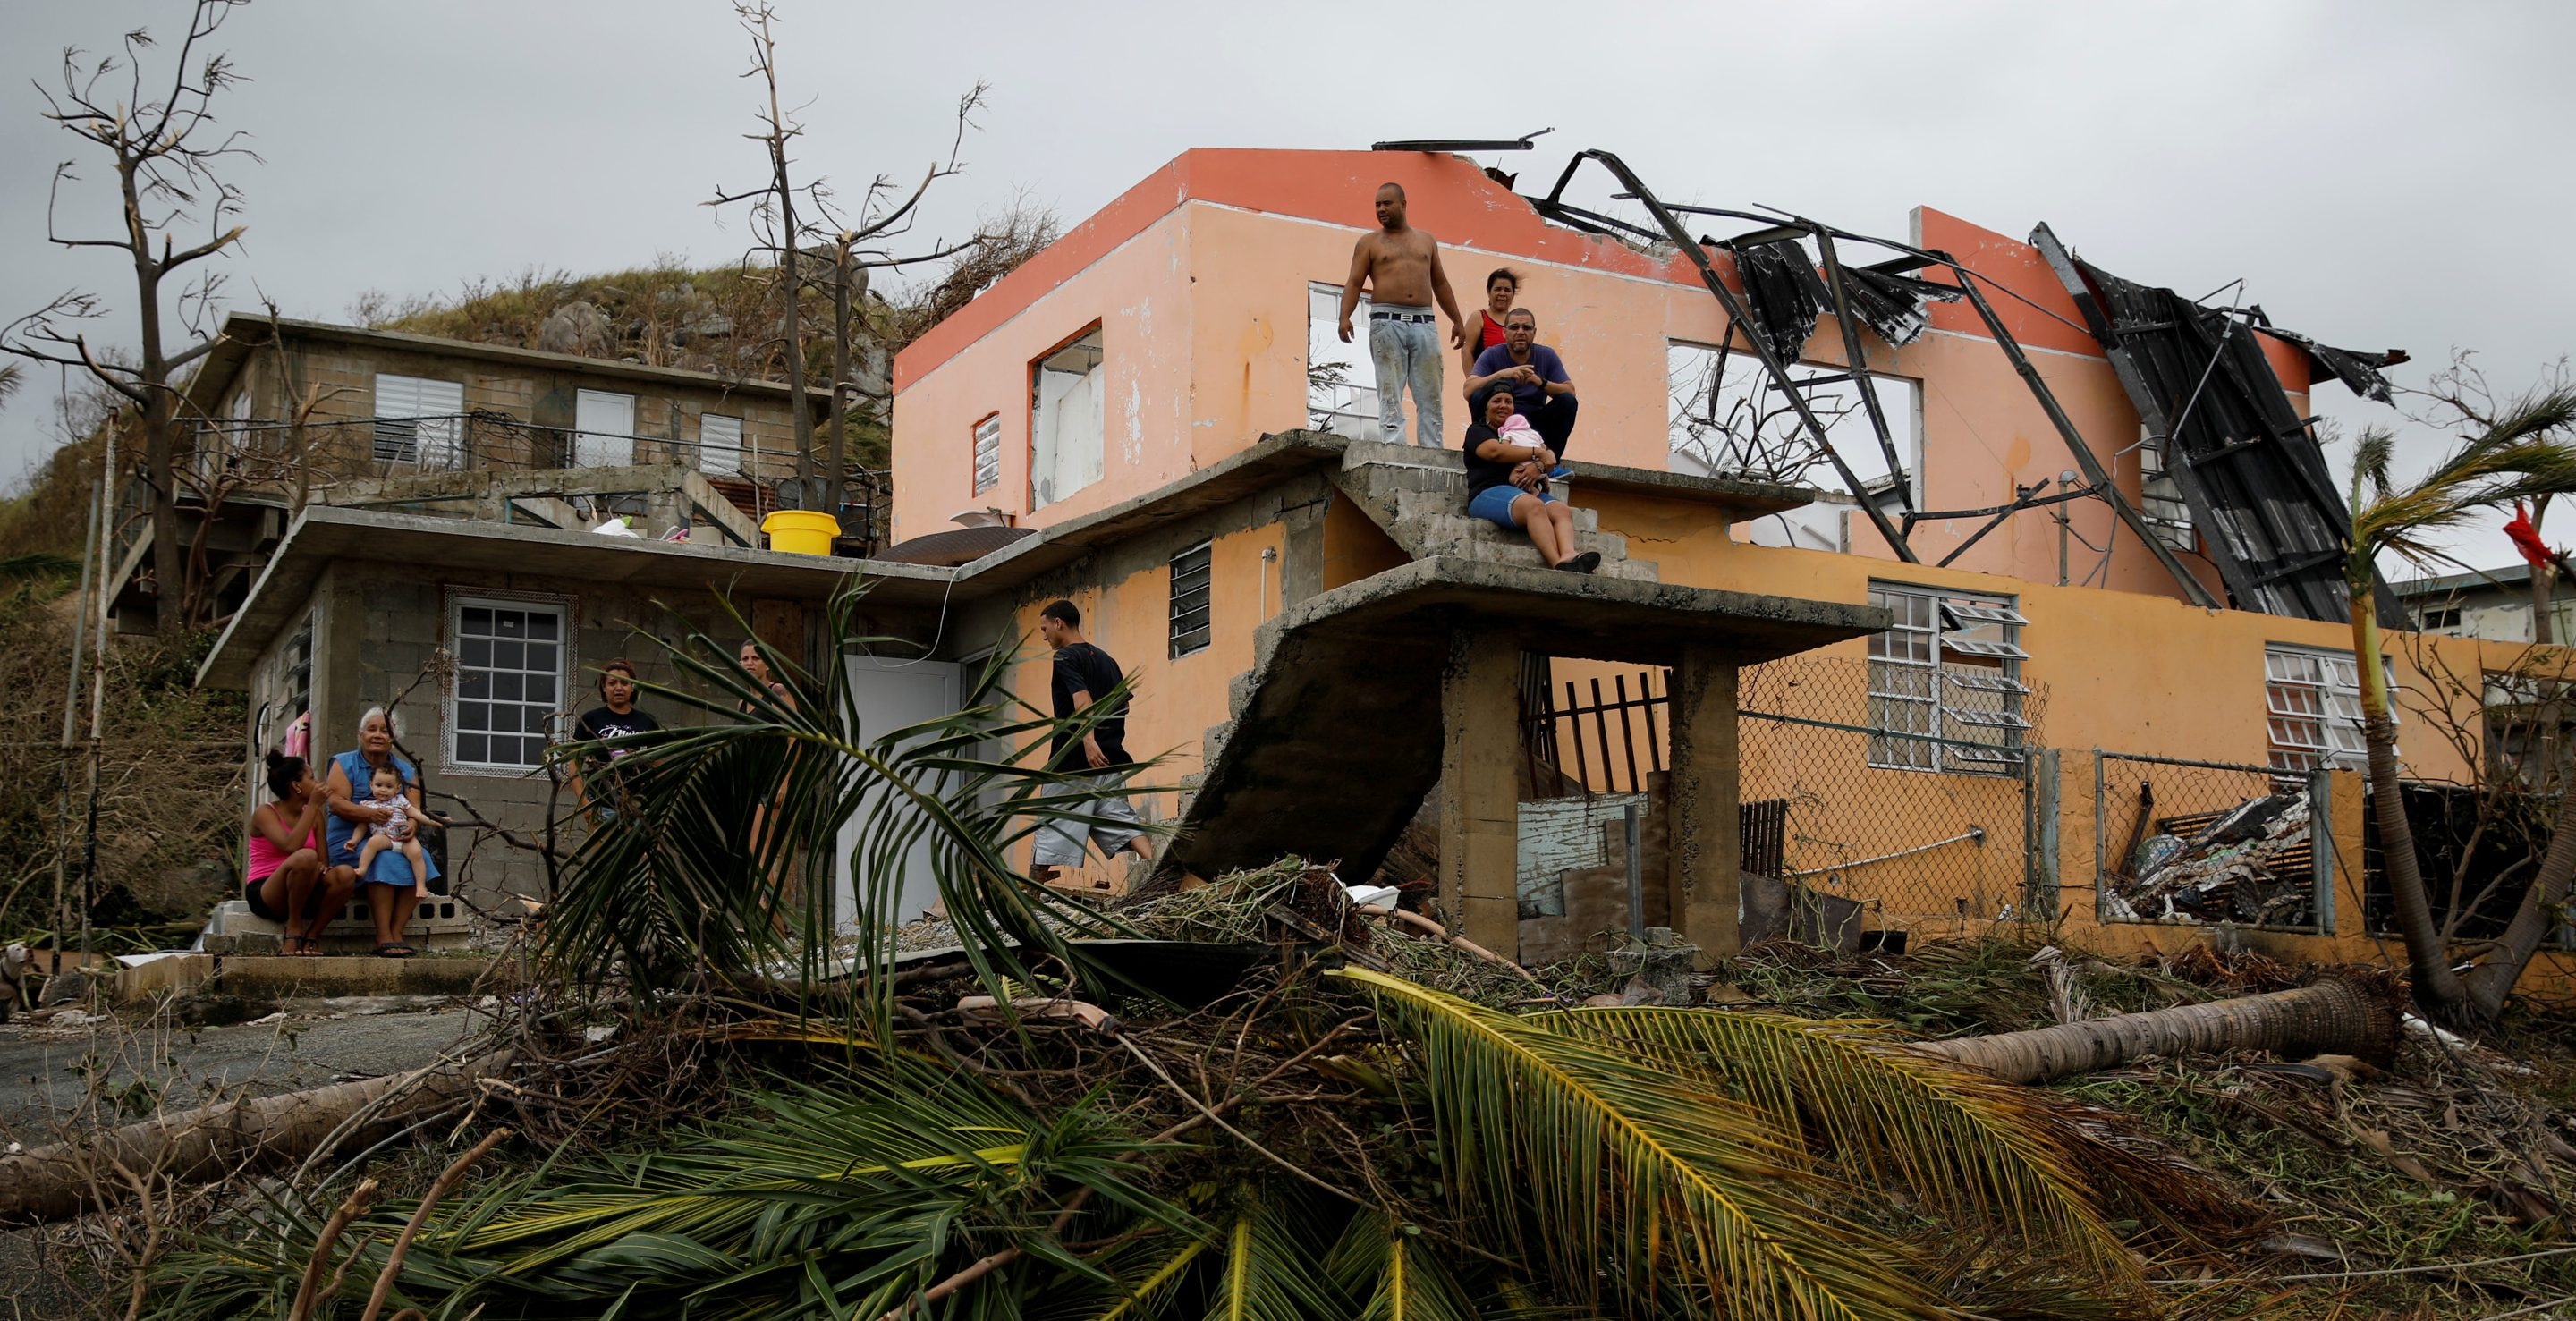 People rest outside a damaged house after the area was hit by Hurricane Maria in Yabucoa, Puerto Rico September 22, 2017. REUTERS/Carlos Garcia Rawlins     TPX IMAGES OF THE DAY - RC14BDD5D400